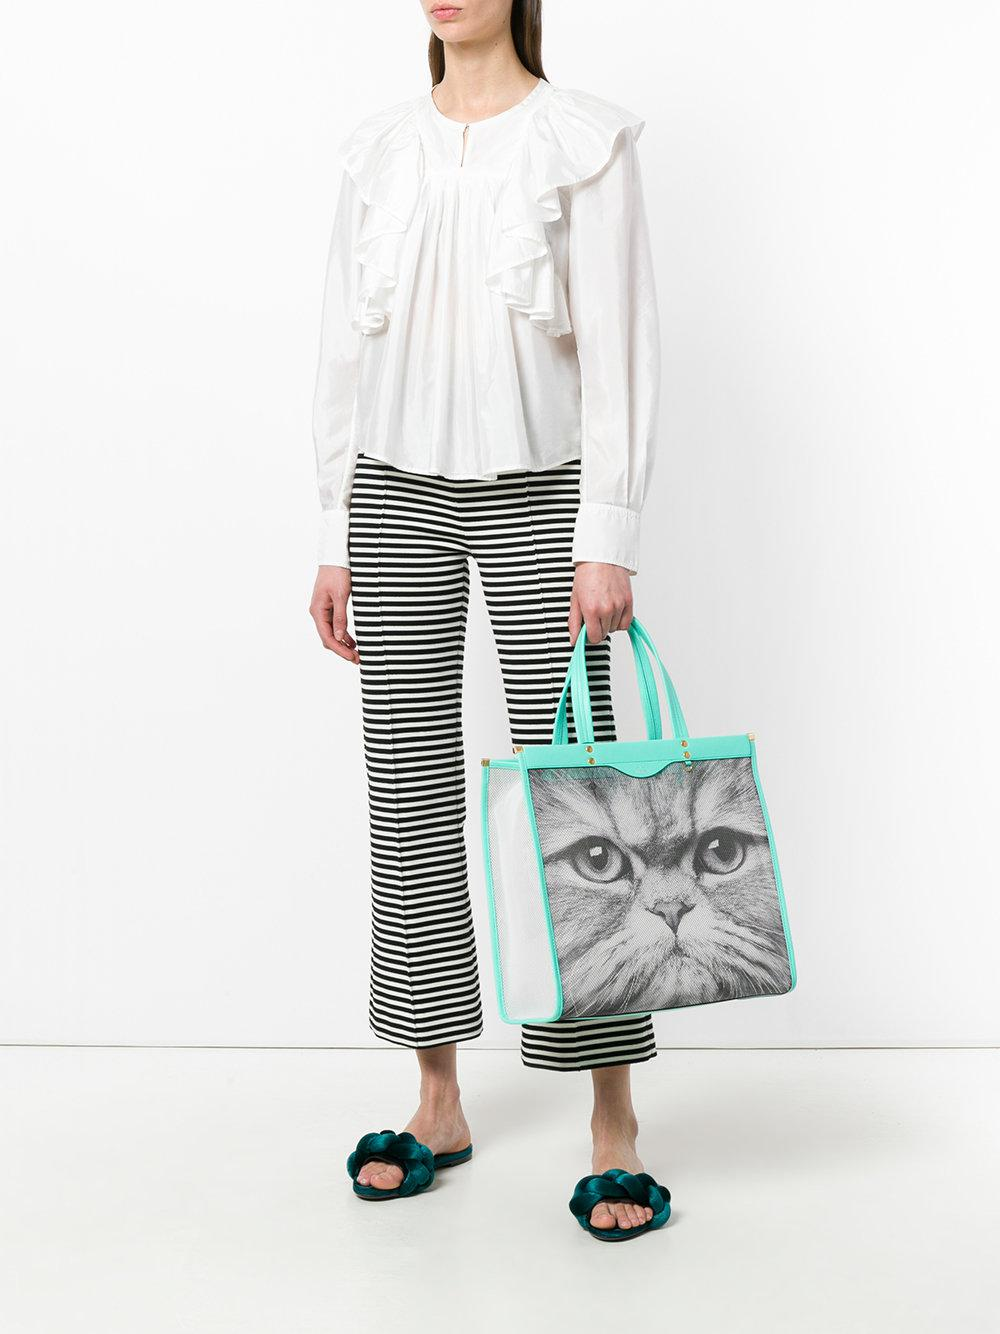 Anya Hindmarch Synthetic Cat Mesh Tote Bag in White